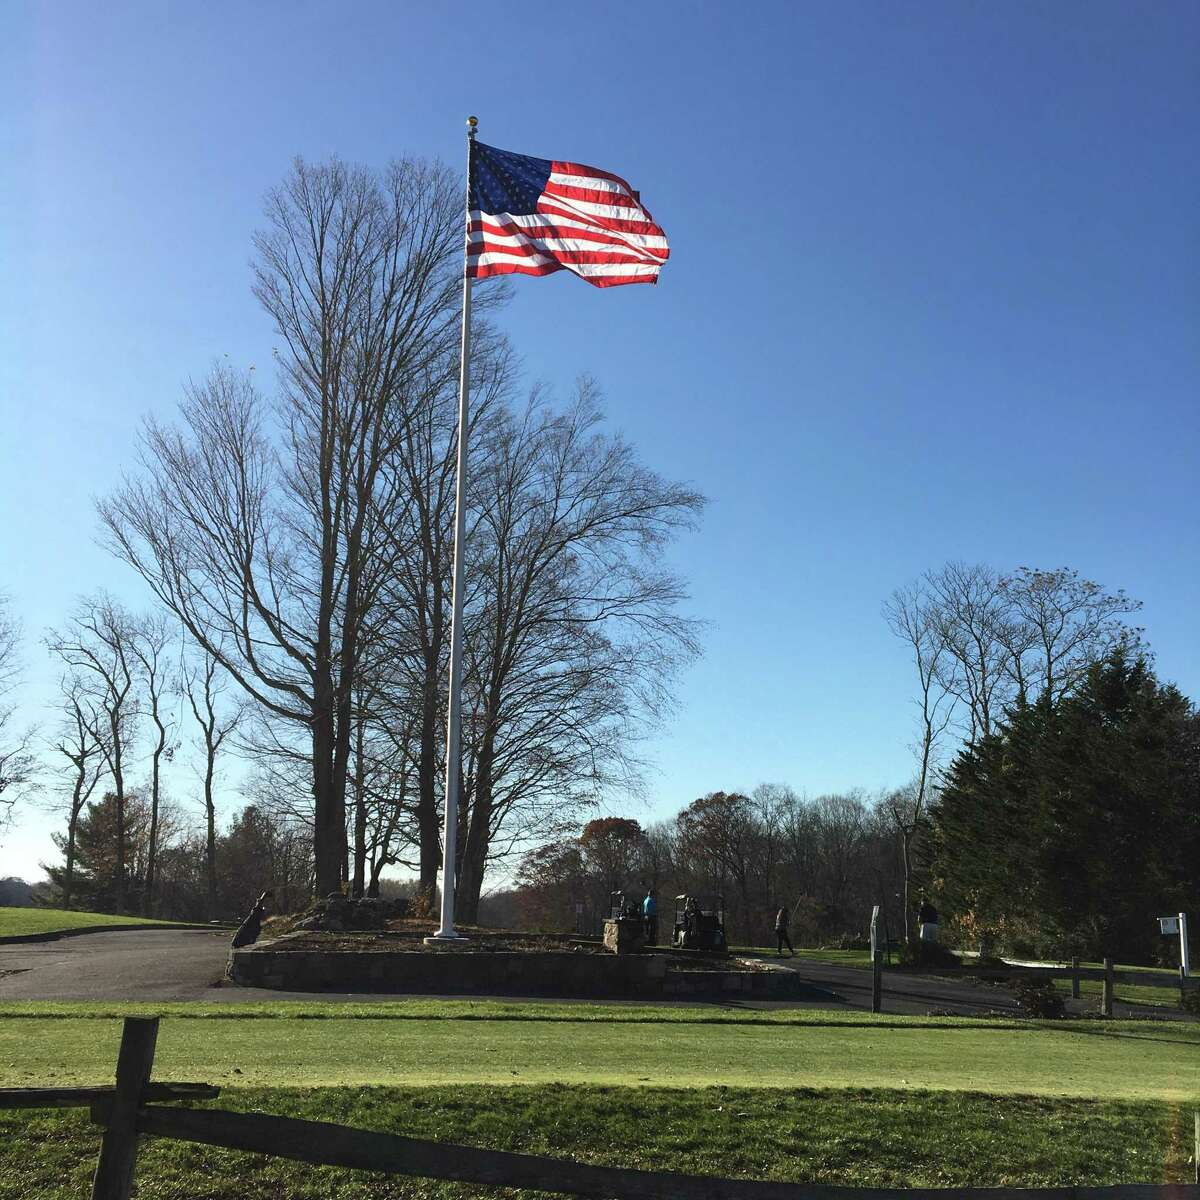 The Tashua Knolls Senior Men's Club recently donated a 50-foot flagpole to the Tashua Knolls Golf Course. It is dedicated to honor veterans and deceased members of the club.